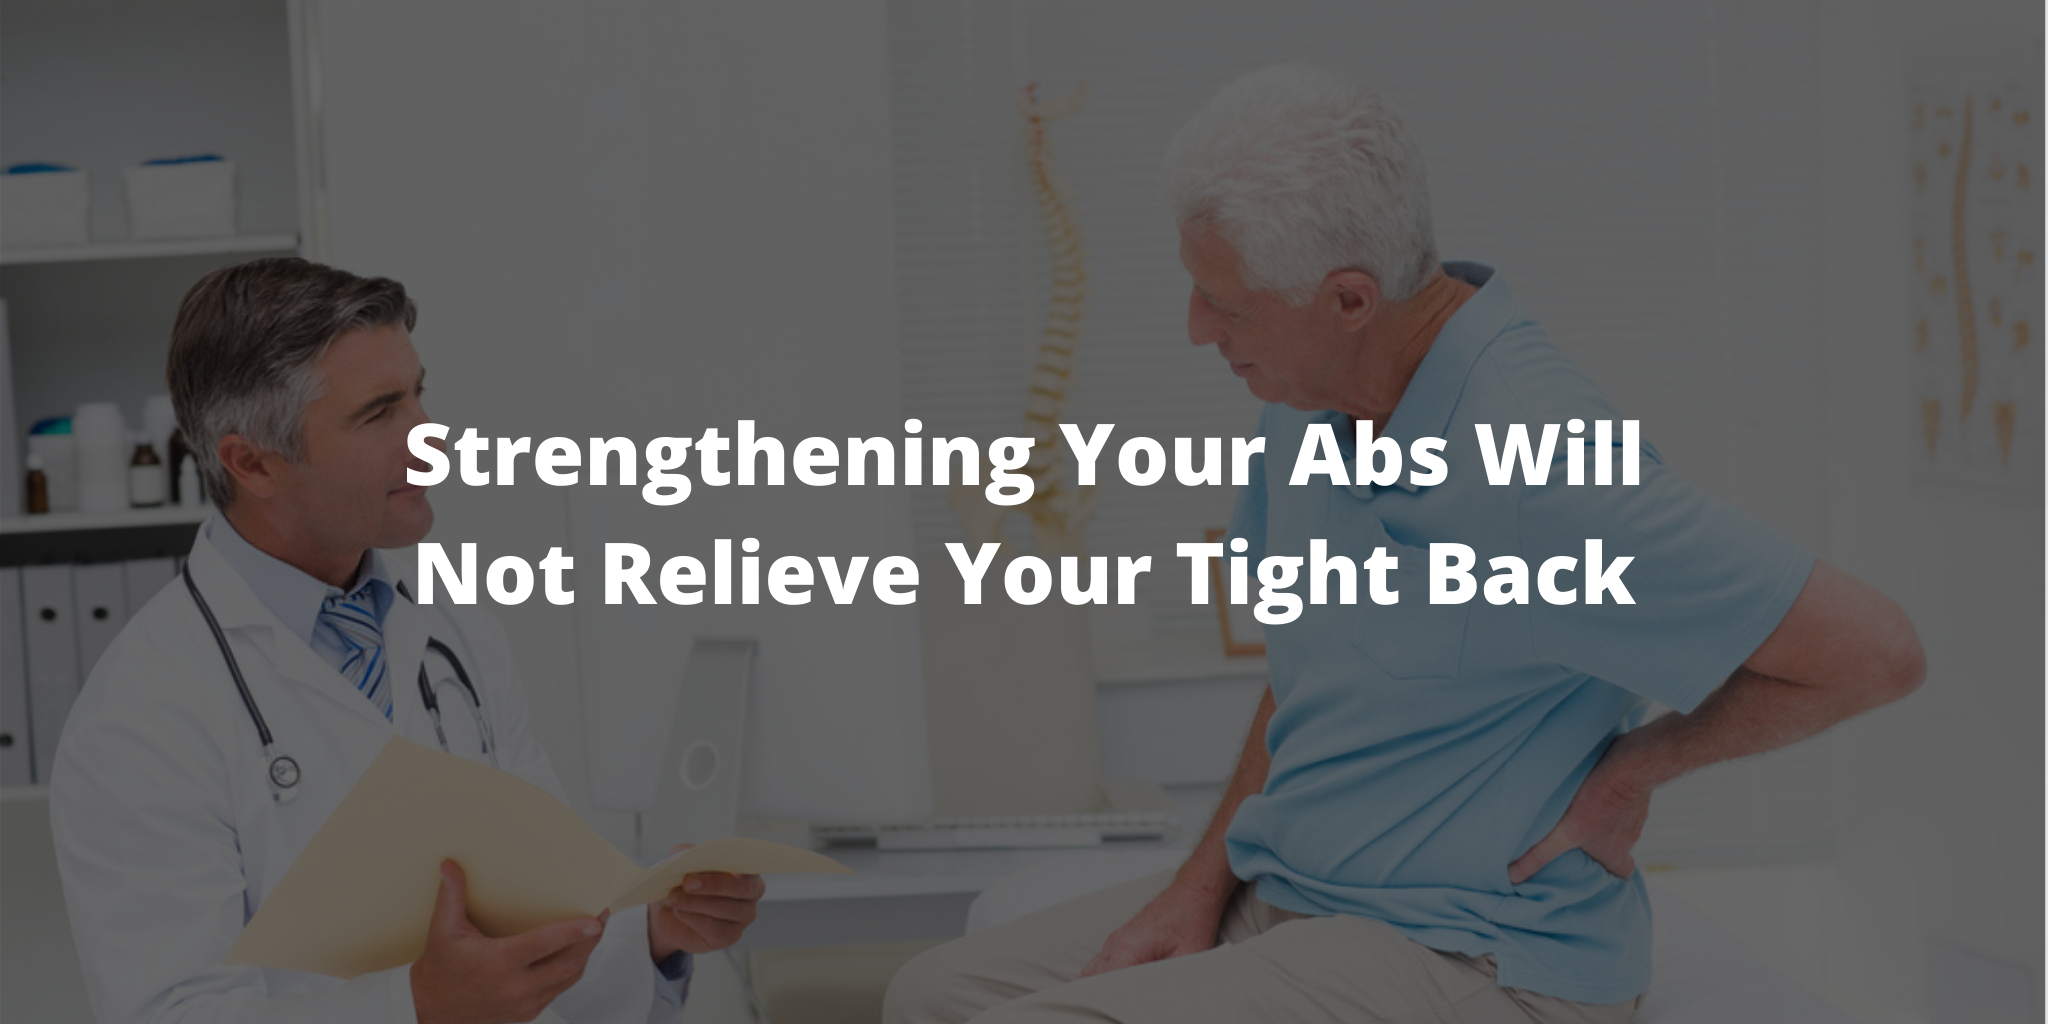 Strengthening Your Abs Will Not Relieve Your Tight Back